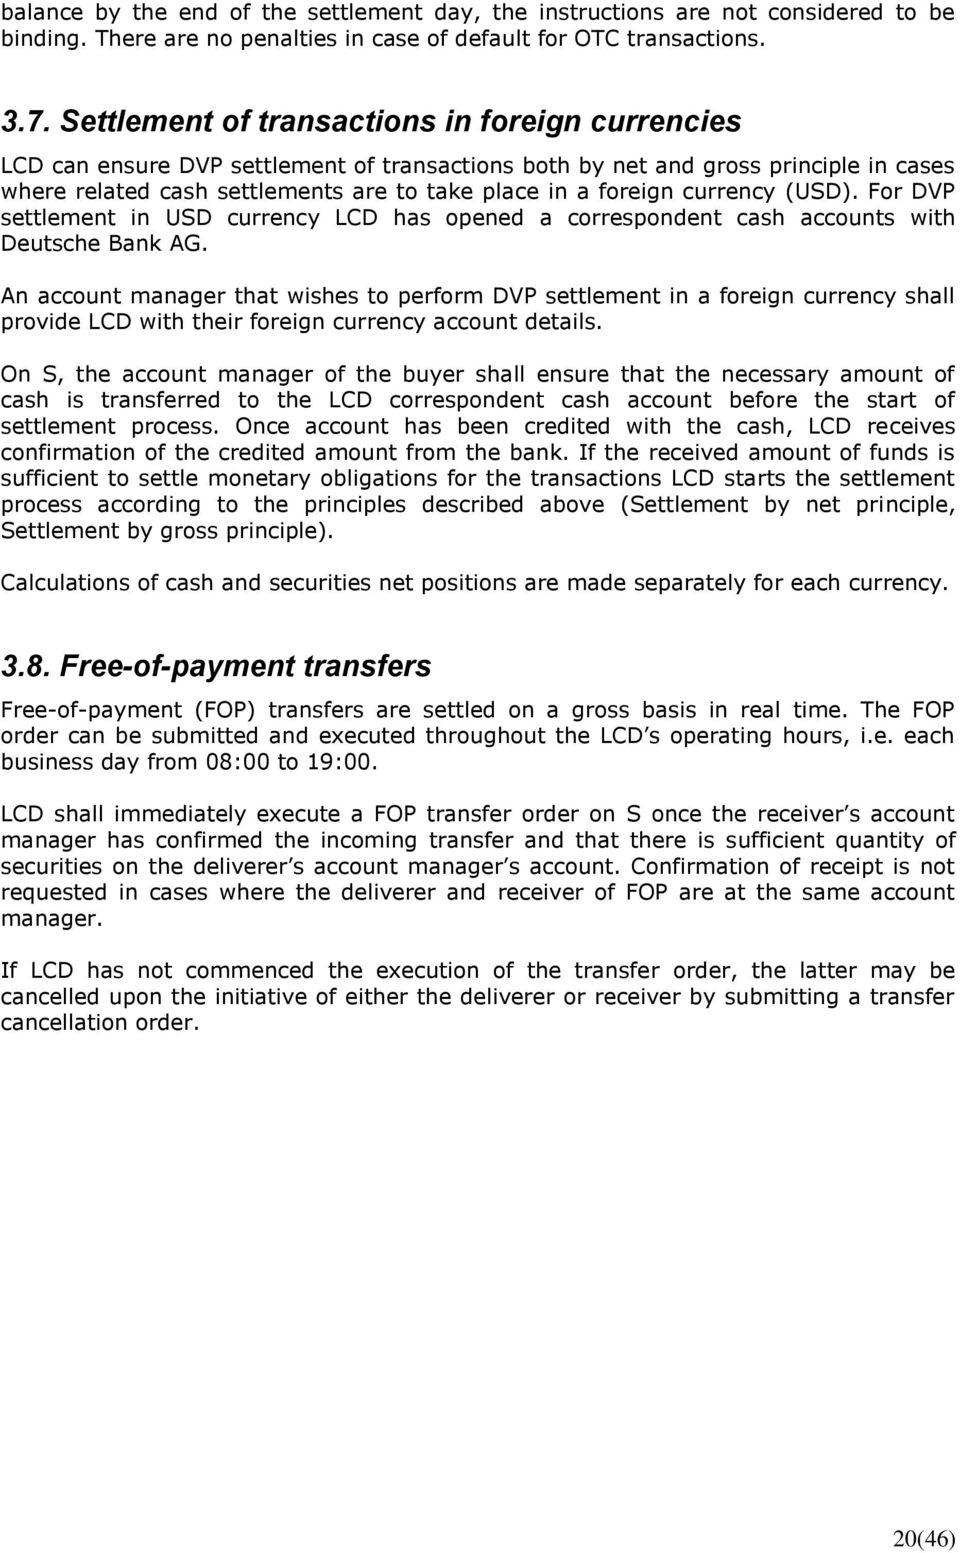 currency (USD). For DVP settlement in USD currency LCD has opened a correspondent cash accounts with Deutsche Bank AG.